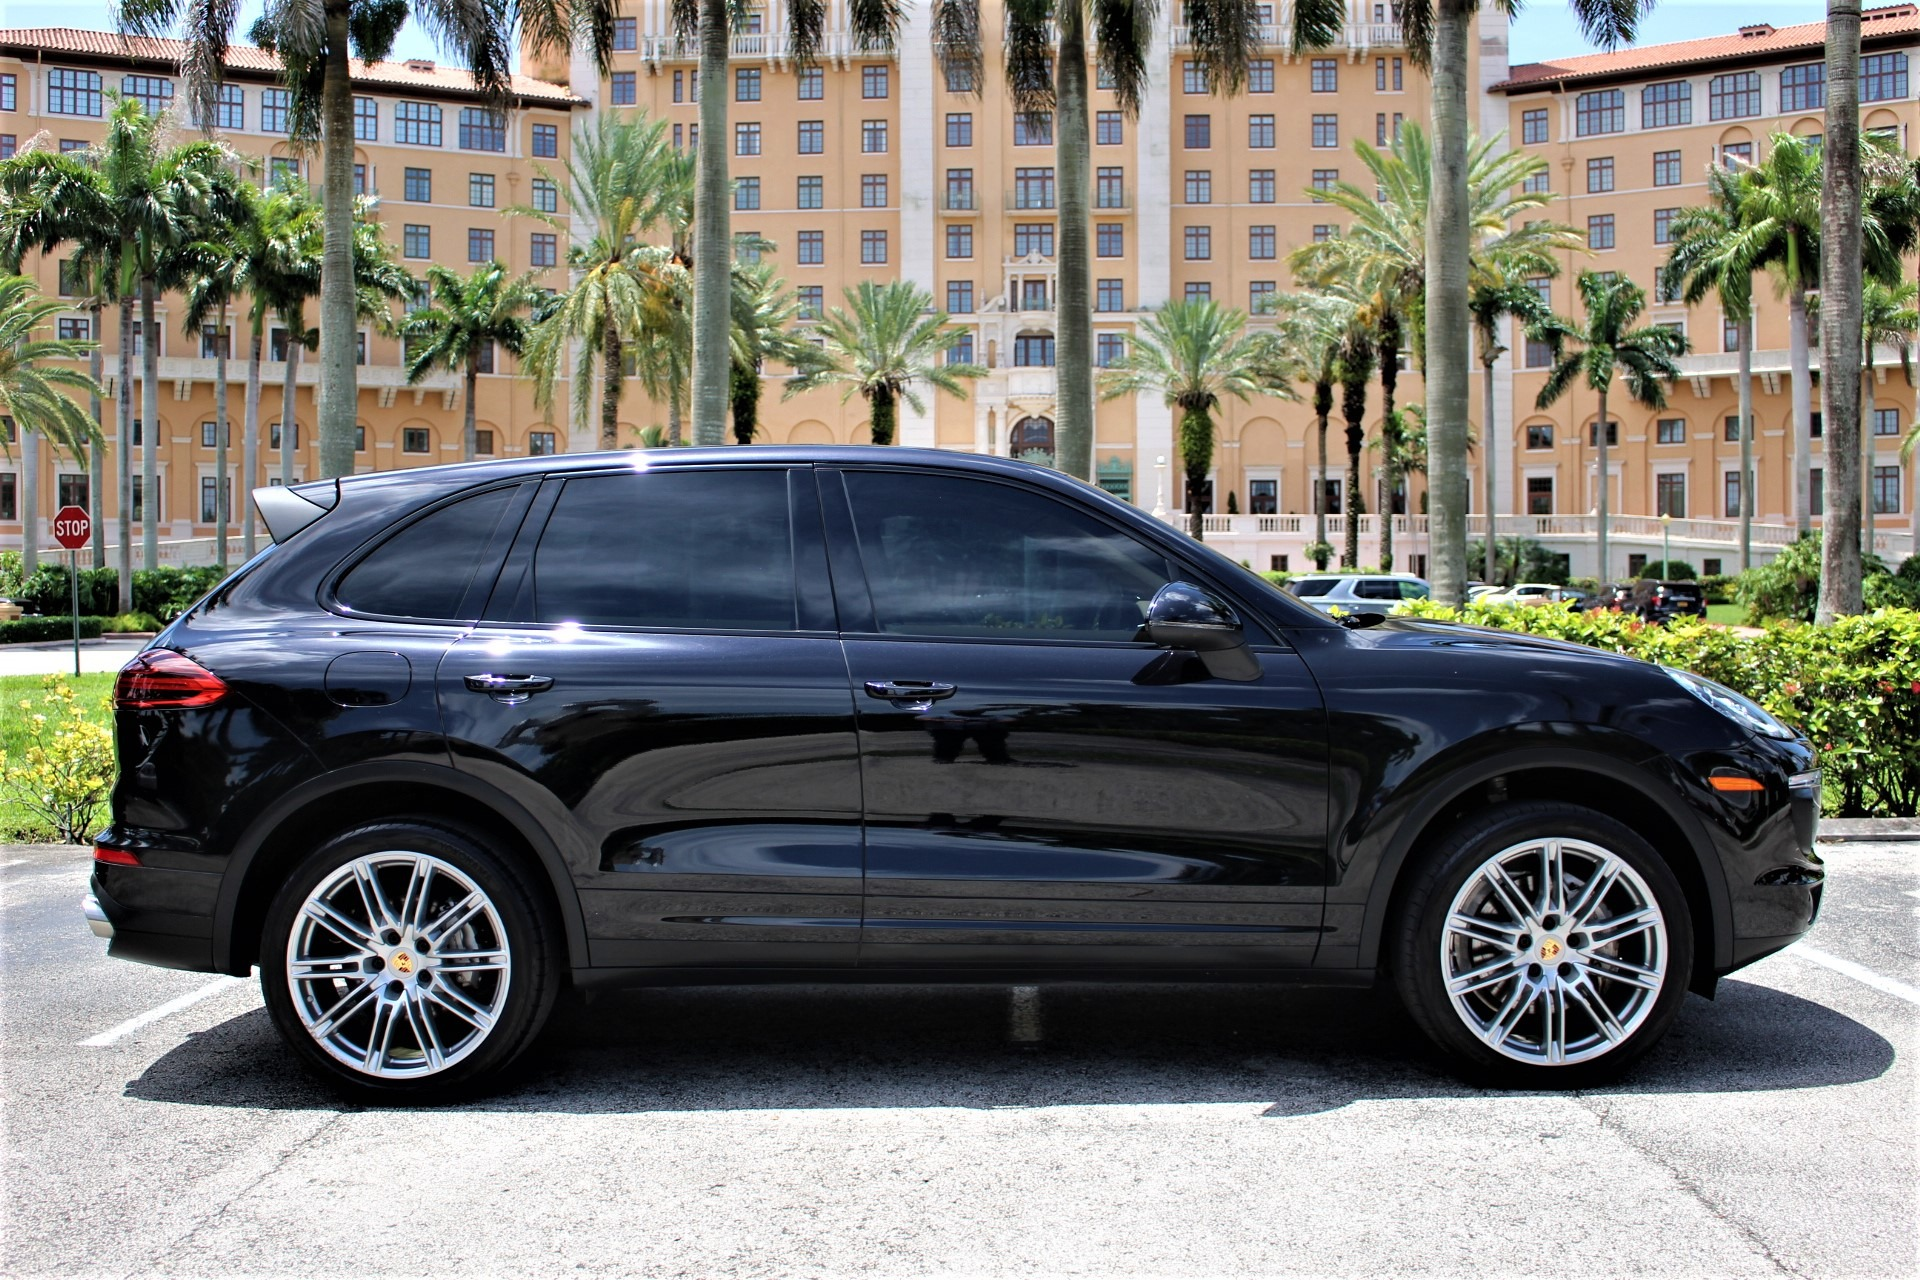 Used 2016 Porsche Cayenne S for sale $43,850 at The Gables Sports Cars in Miami FL 33146 2